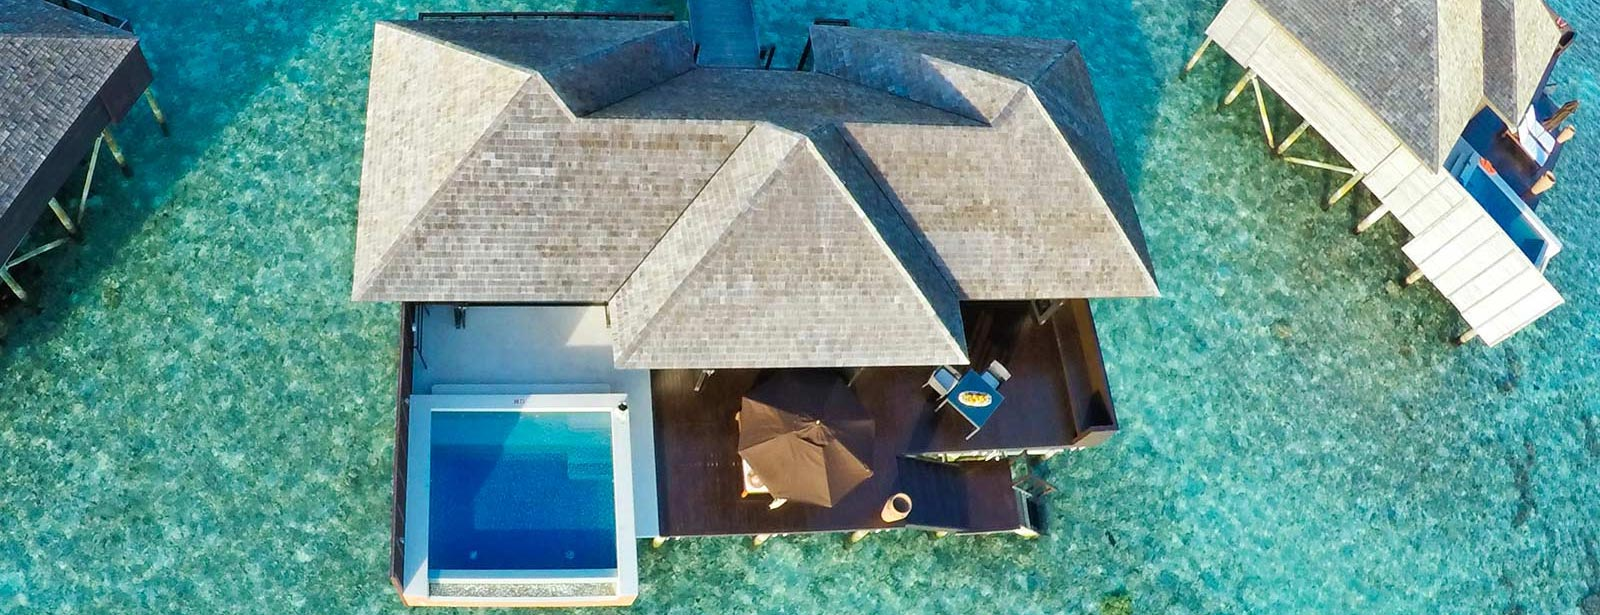 Lily Beach, Maldives luxury resorts